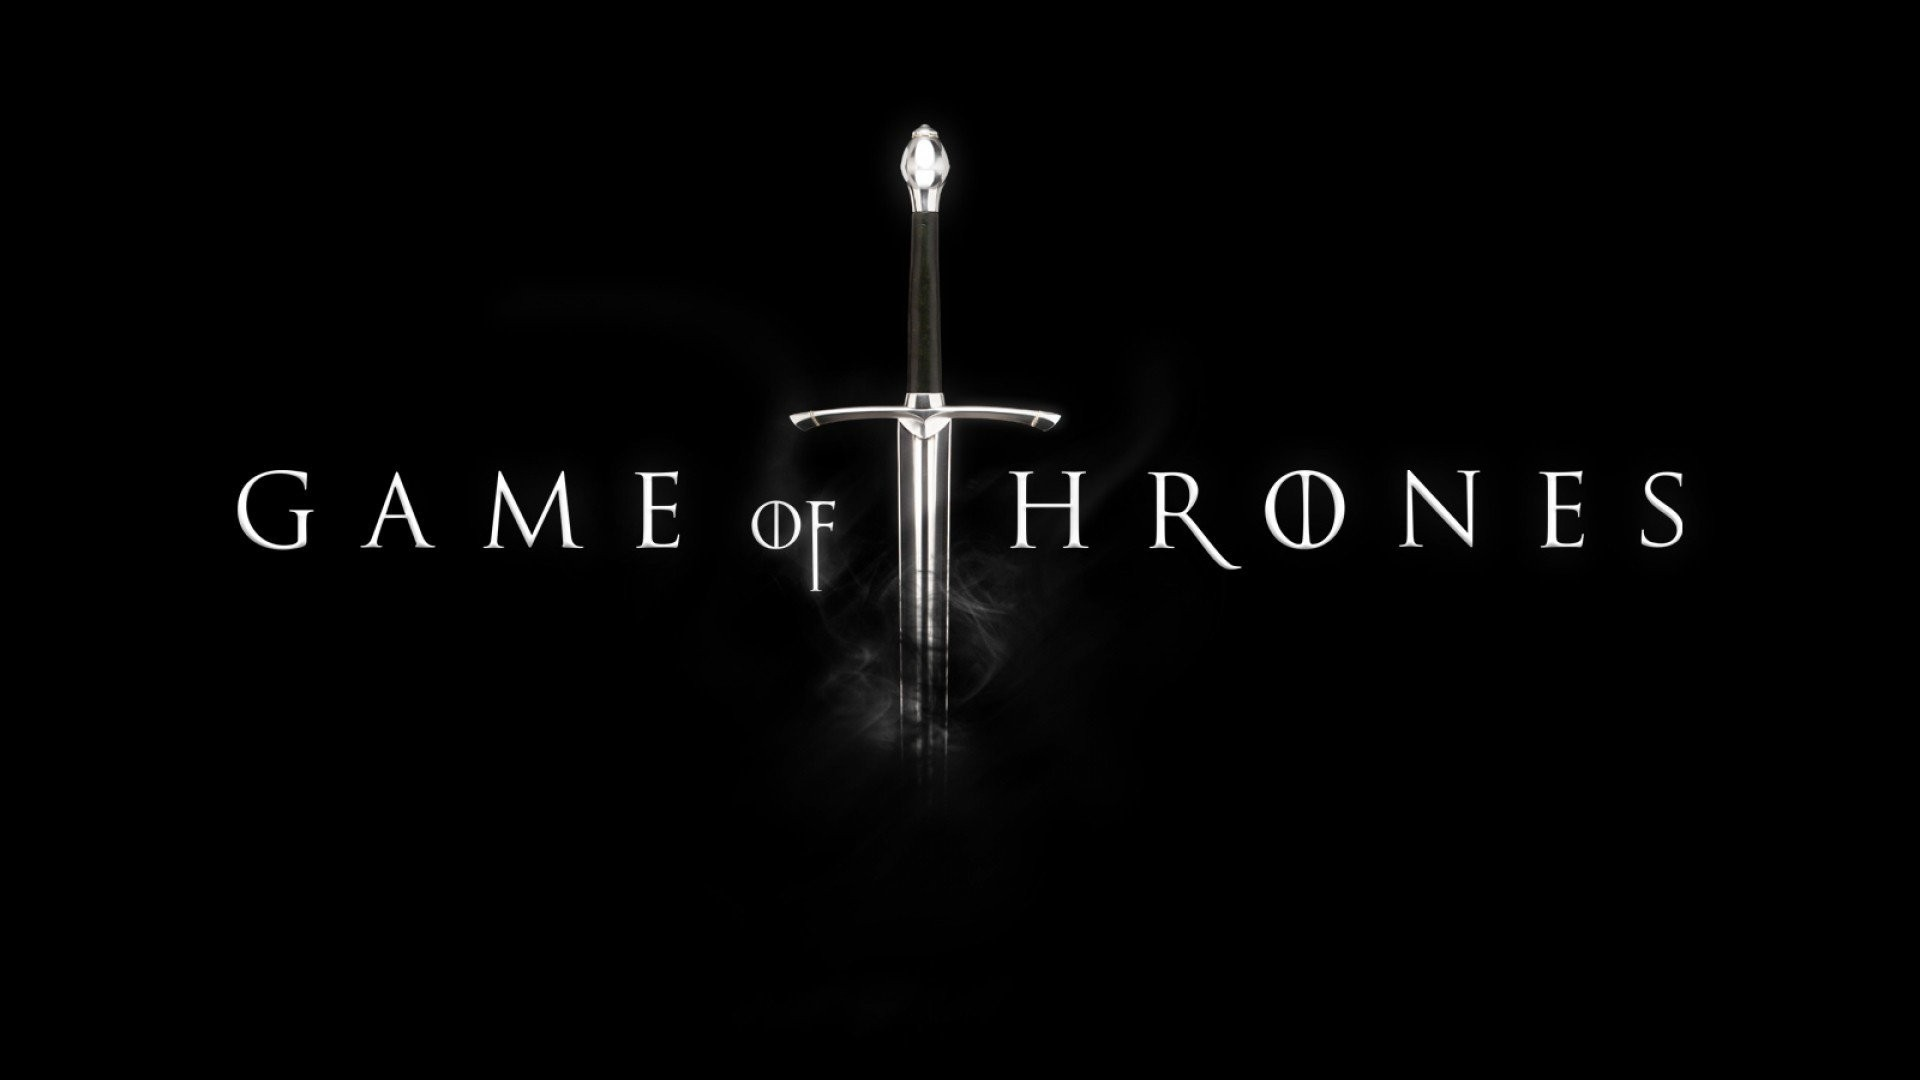 Game Of Thrones Wallpaper Hd Download Free Beautiful Hd